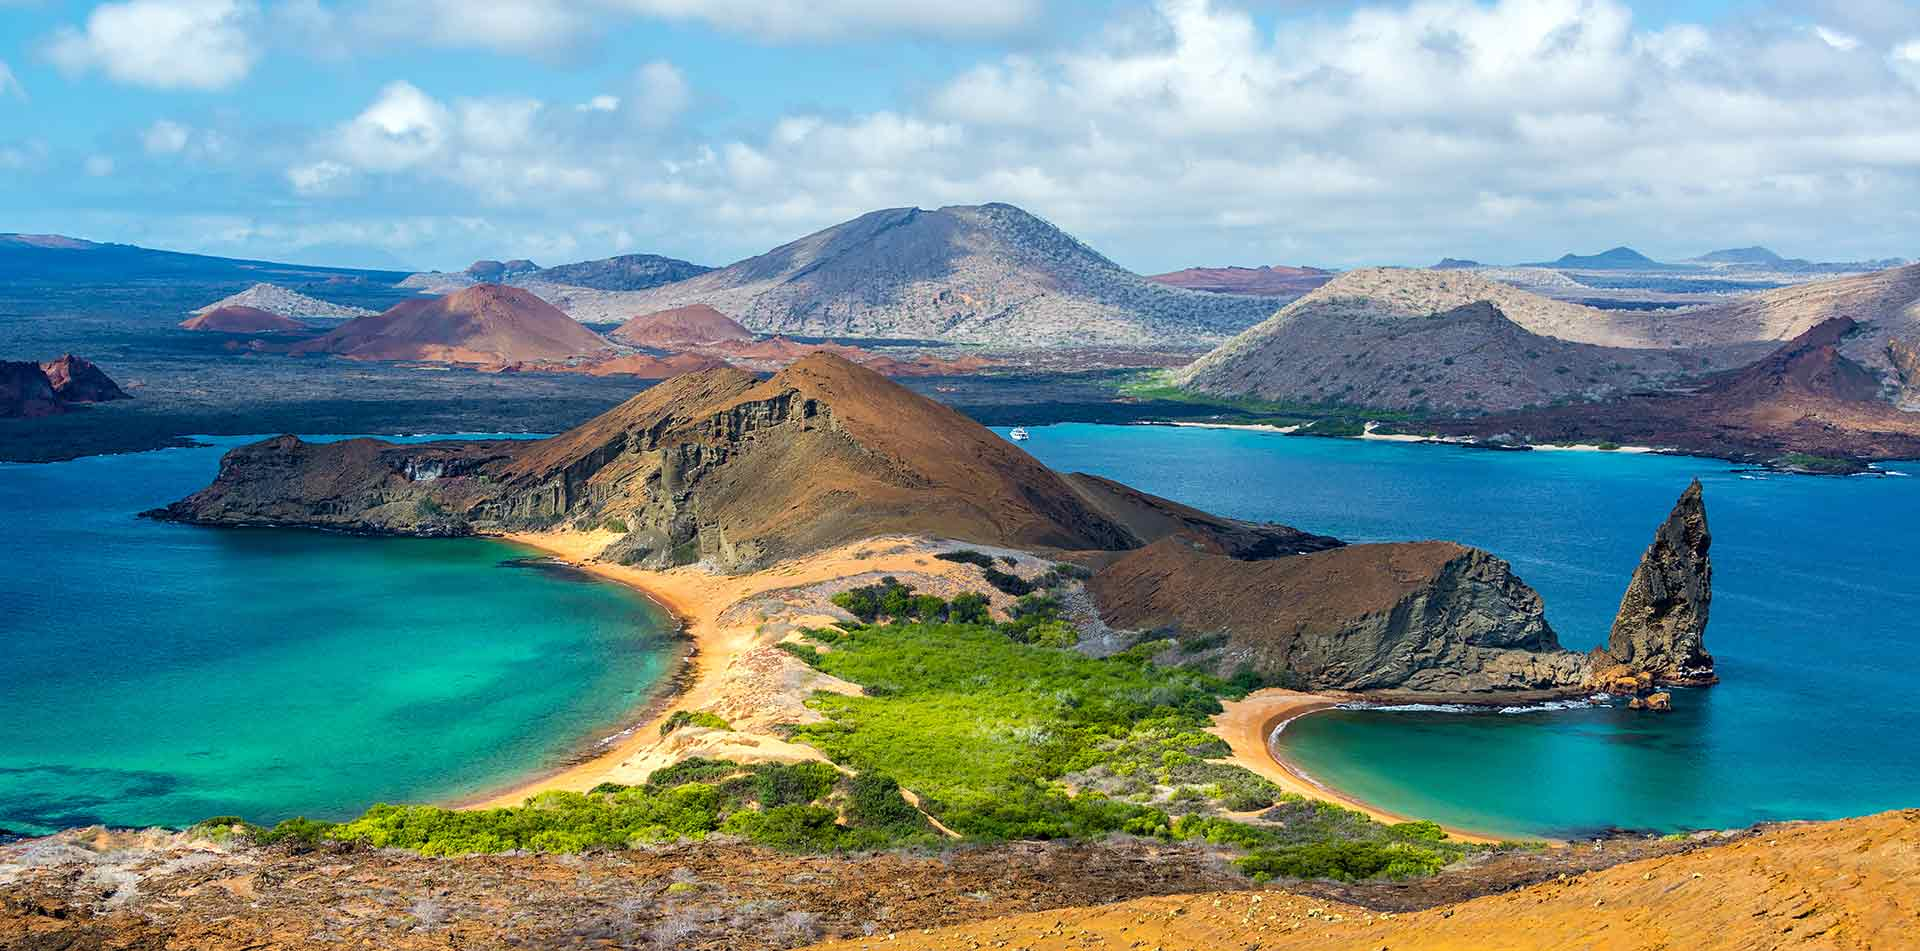 Island in the Galapagos